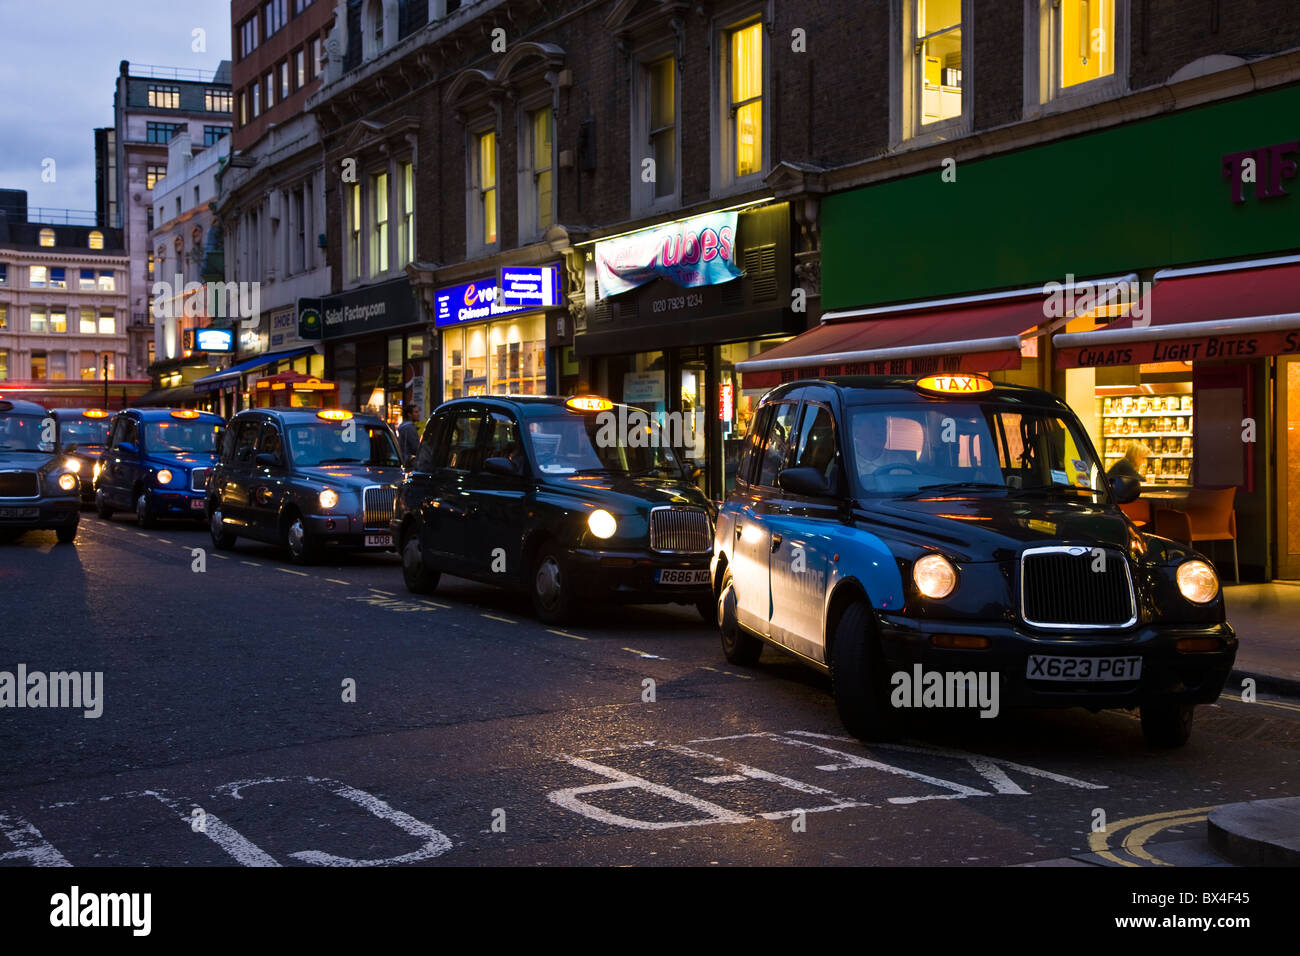 Row of black cabs taxis near Liverpoool Street Station, London, UK Stock Photo